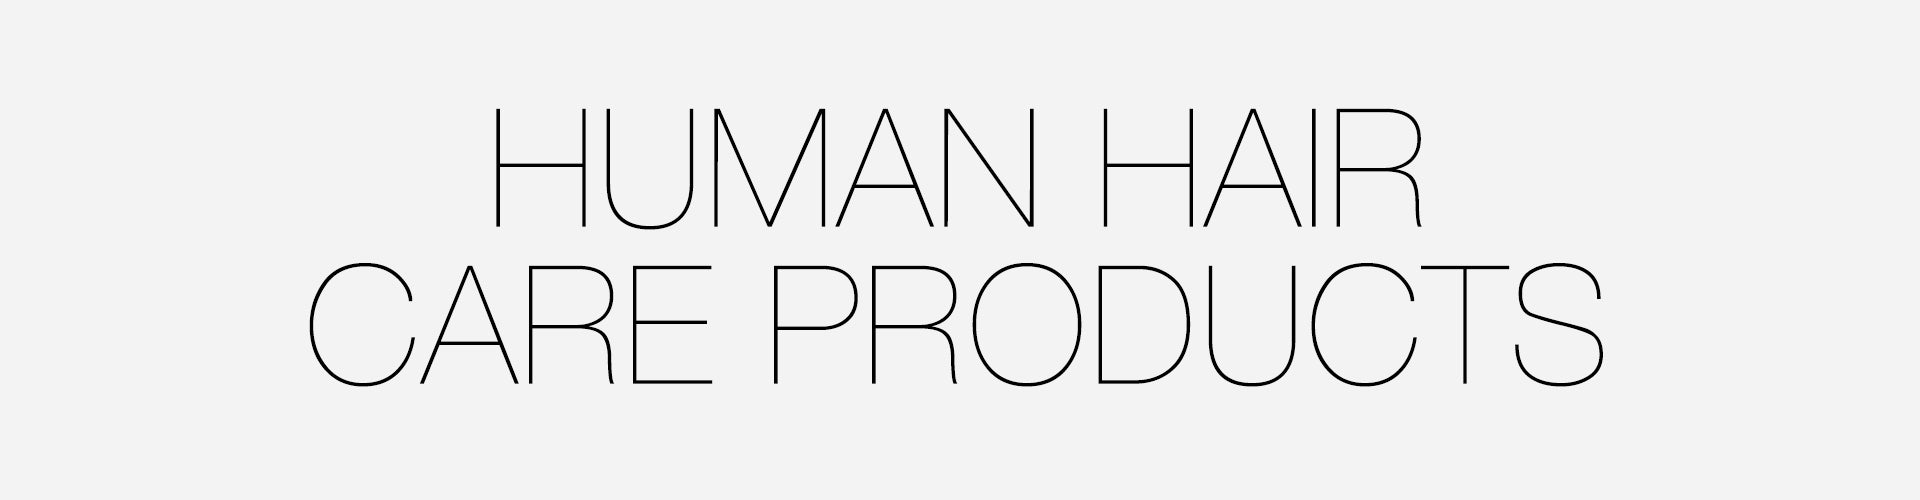 Human Hair Care Products for Wigs, Hairpieces & Extensions